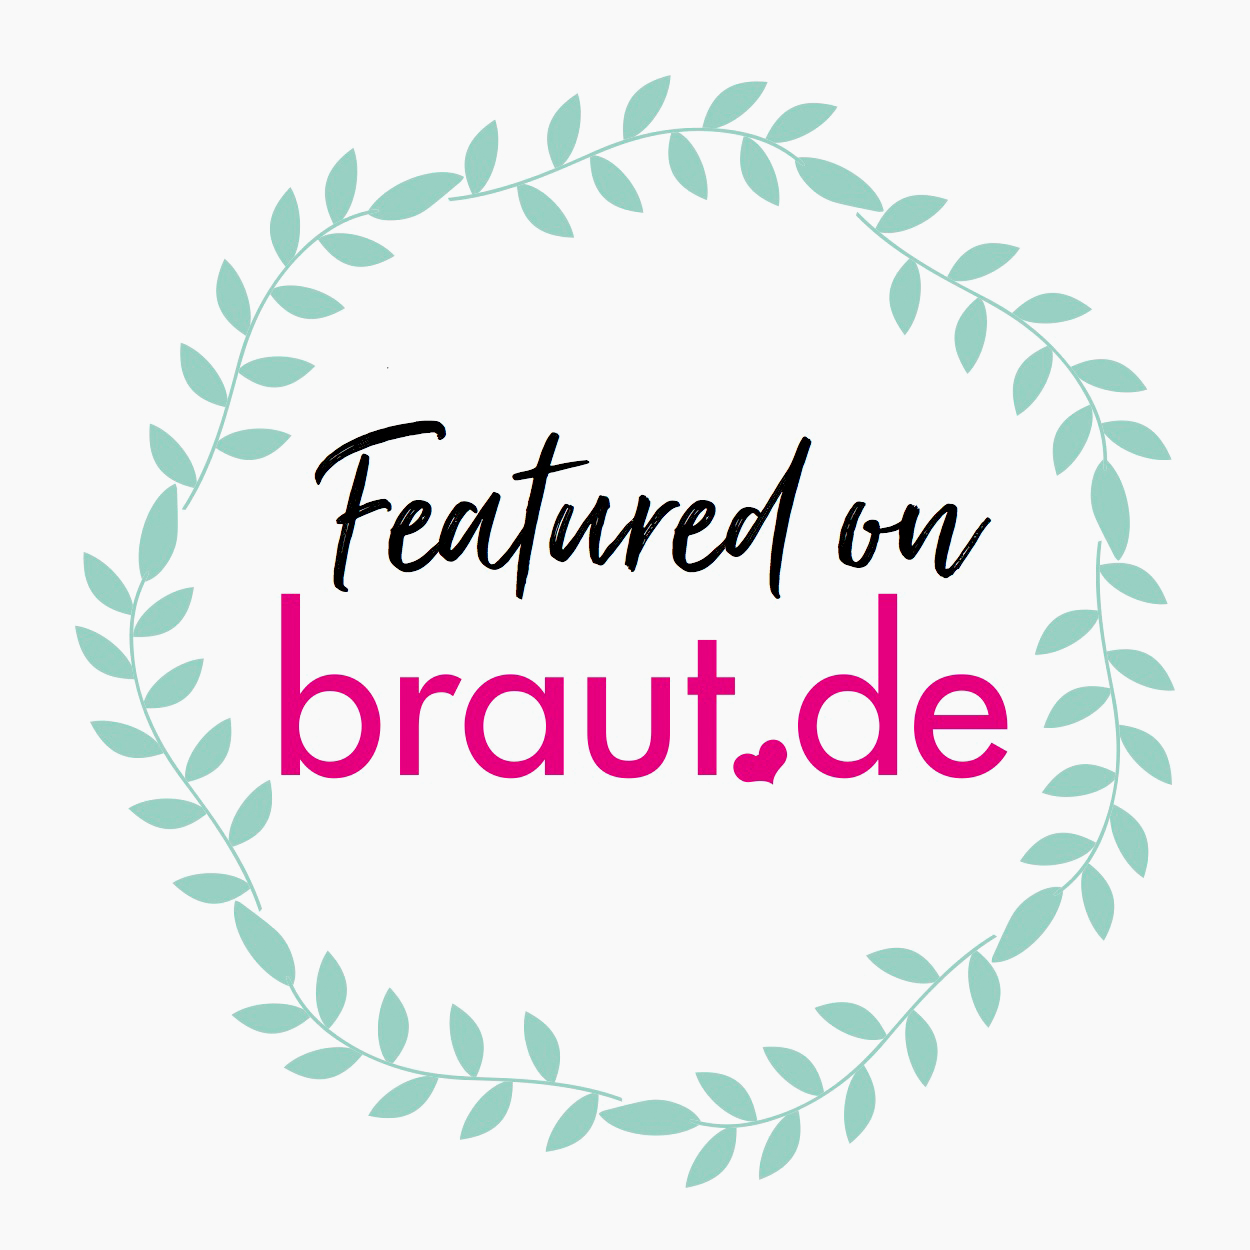 Featured on braut.de